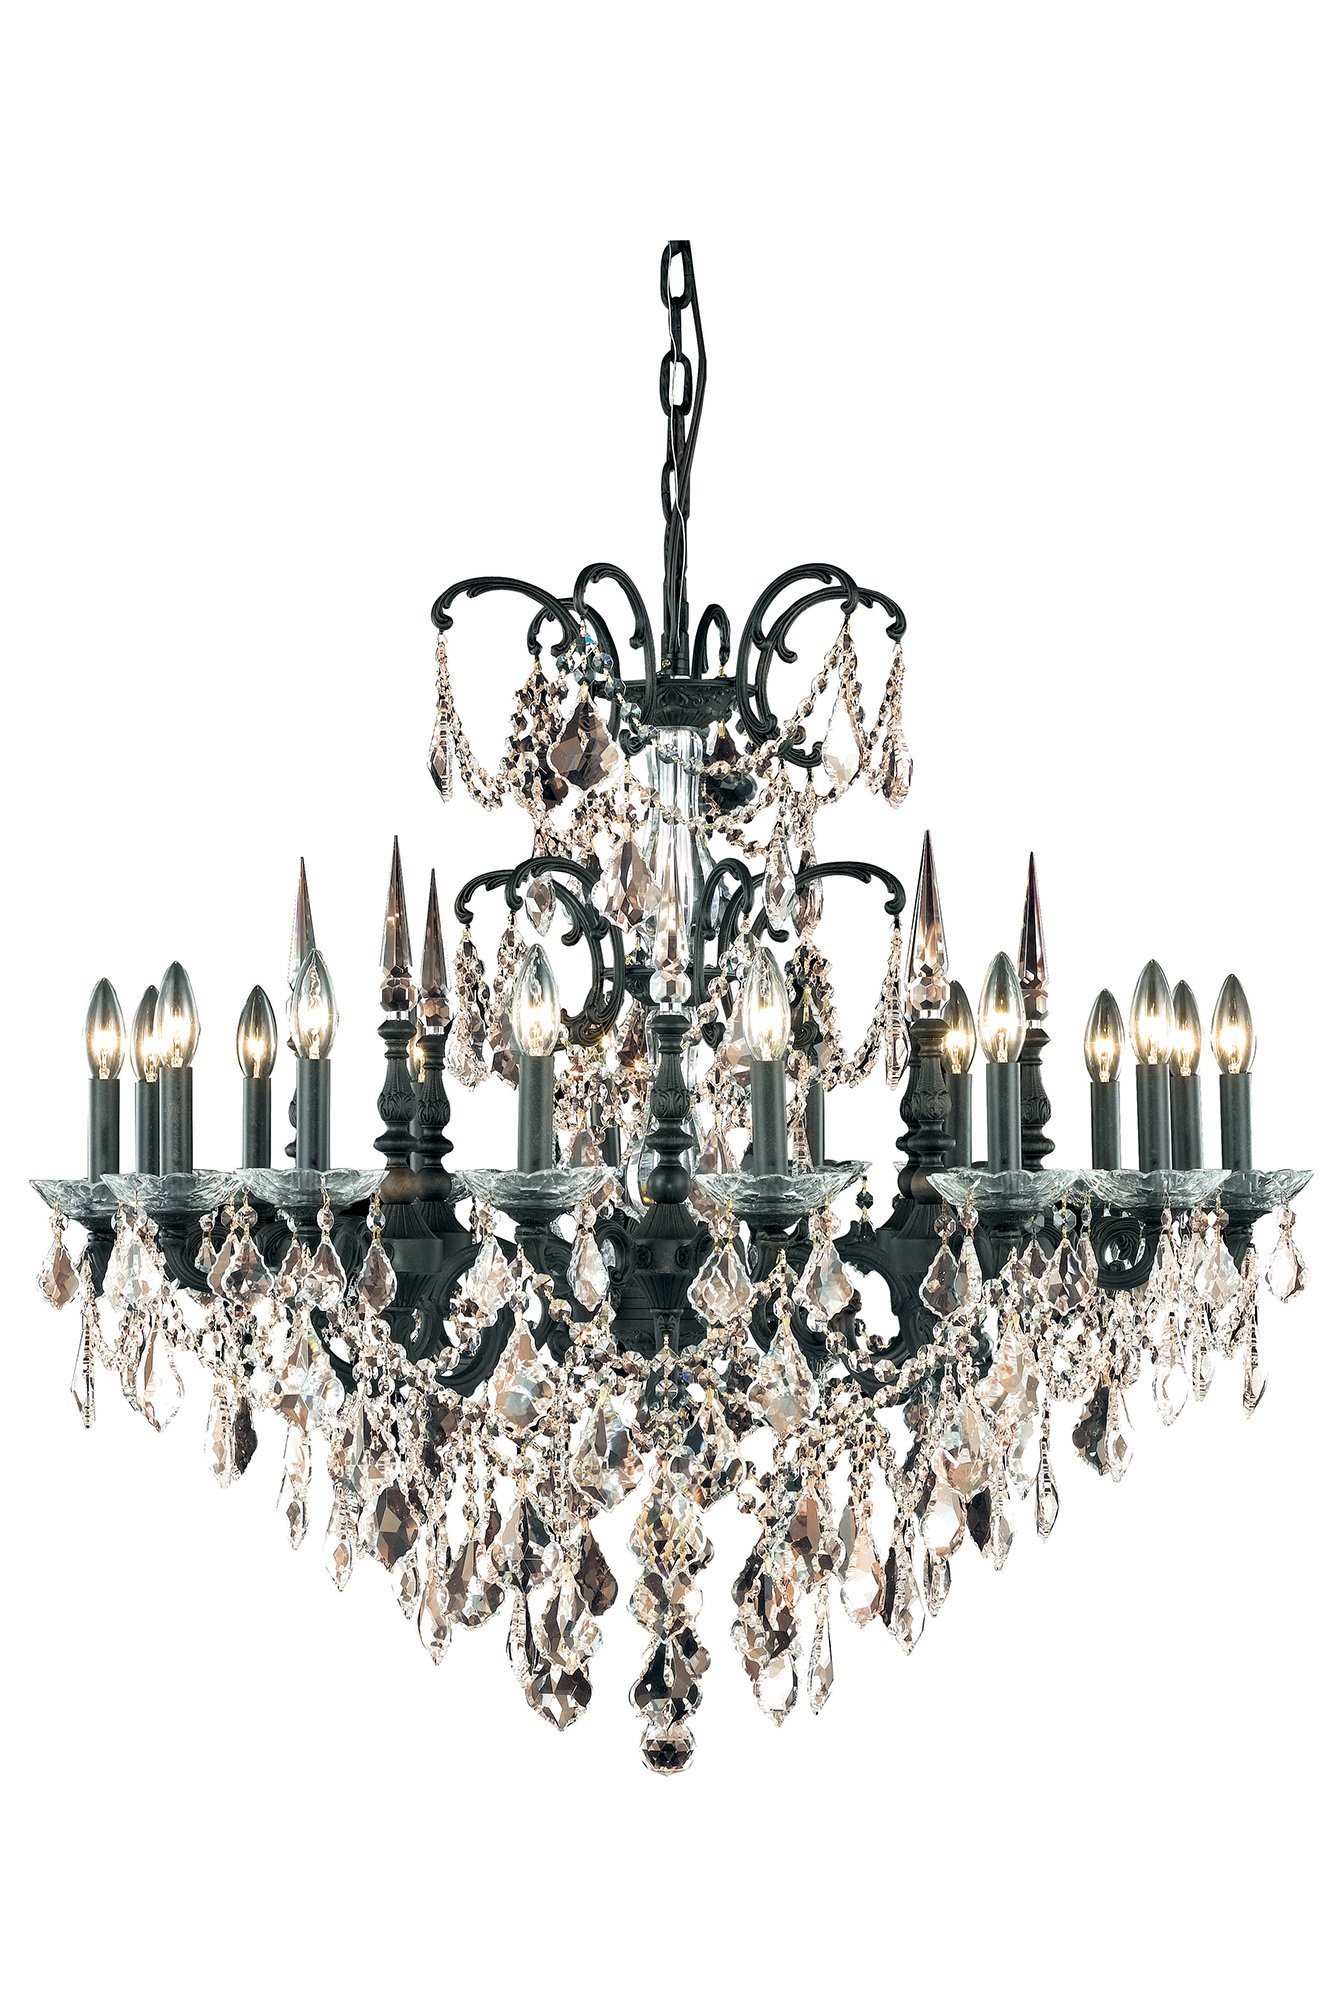 9716 Athena Collection Hanging Fixture D35in H33in Lt:16 Dark Bronze Finish (Royal Cut Golden Teak Crystals)